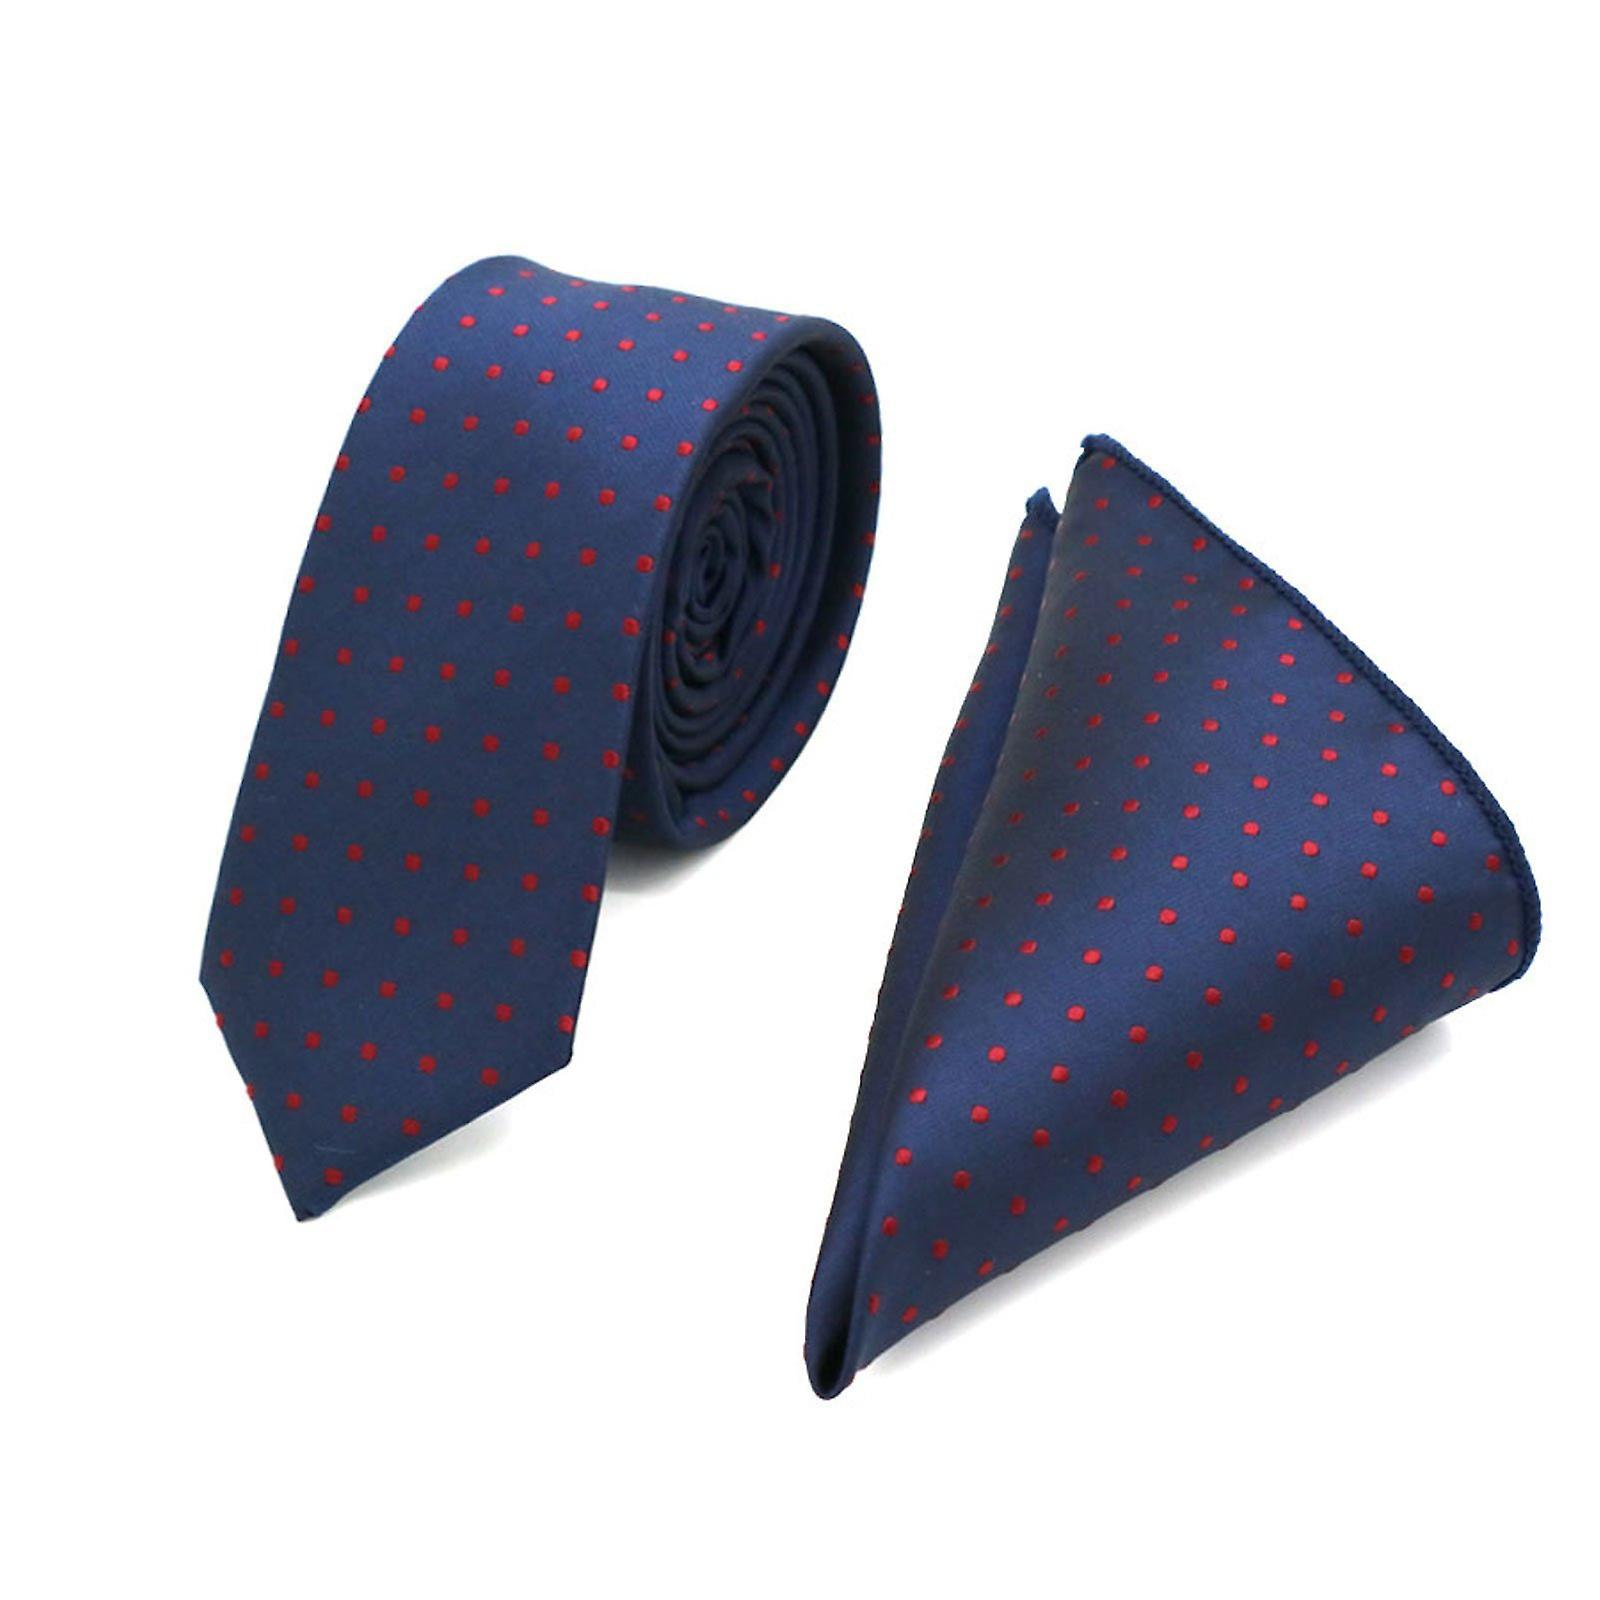 Blue & burgundy polka dot skinny tie & pocket square